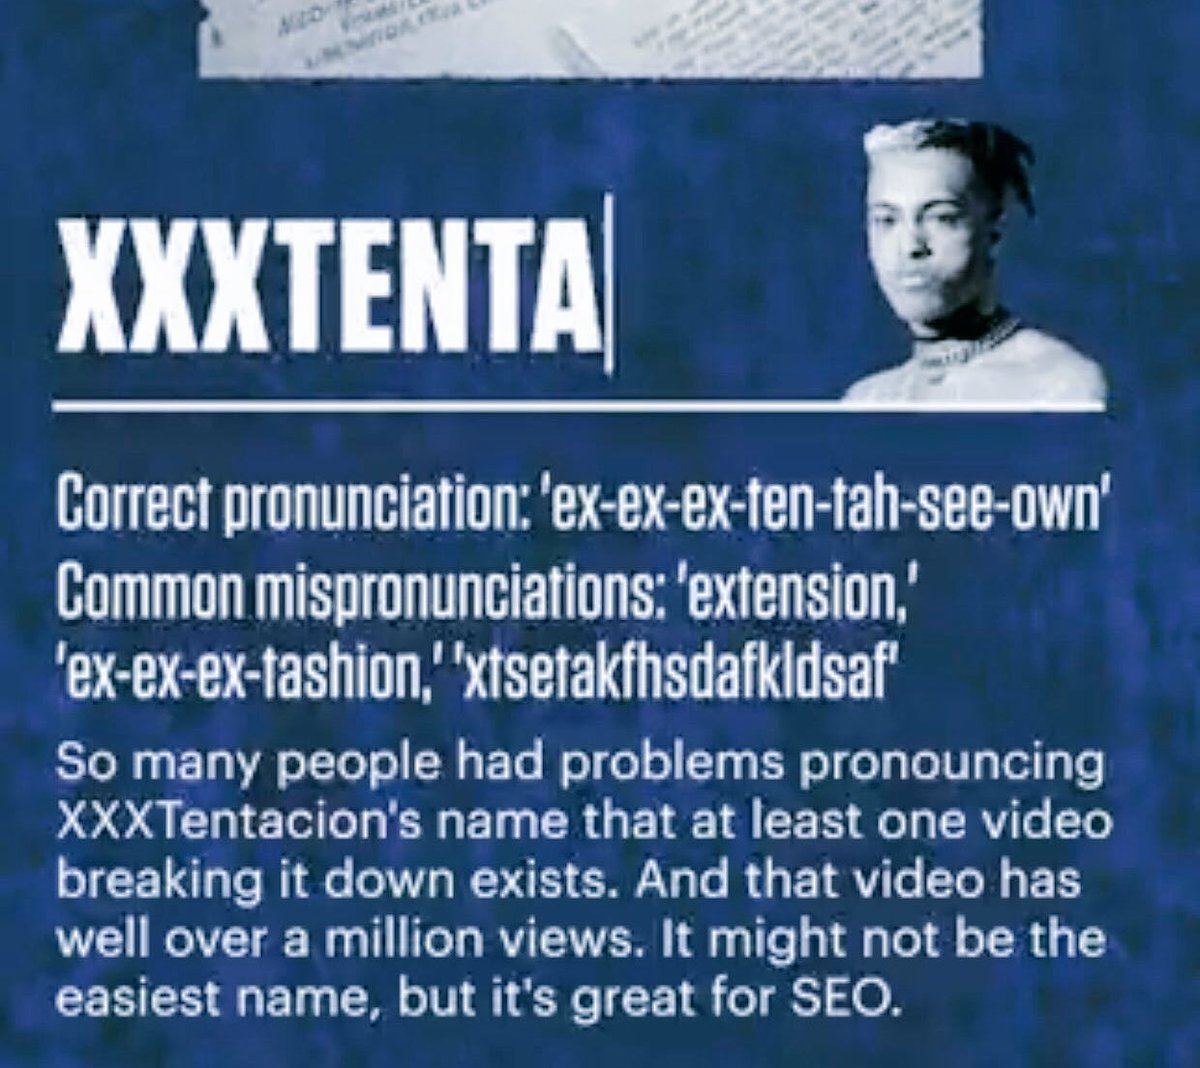 On snapchat this morning and @Complex is out here teaching the kids good #SEO #SearchEngineOptimization @xxxtentacion #stillcantpronounceit<br>http://pic.twitter.com/Q35ZGfvMfB